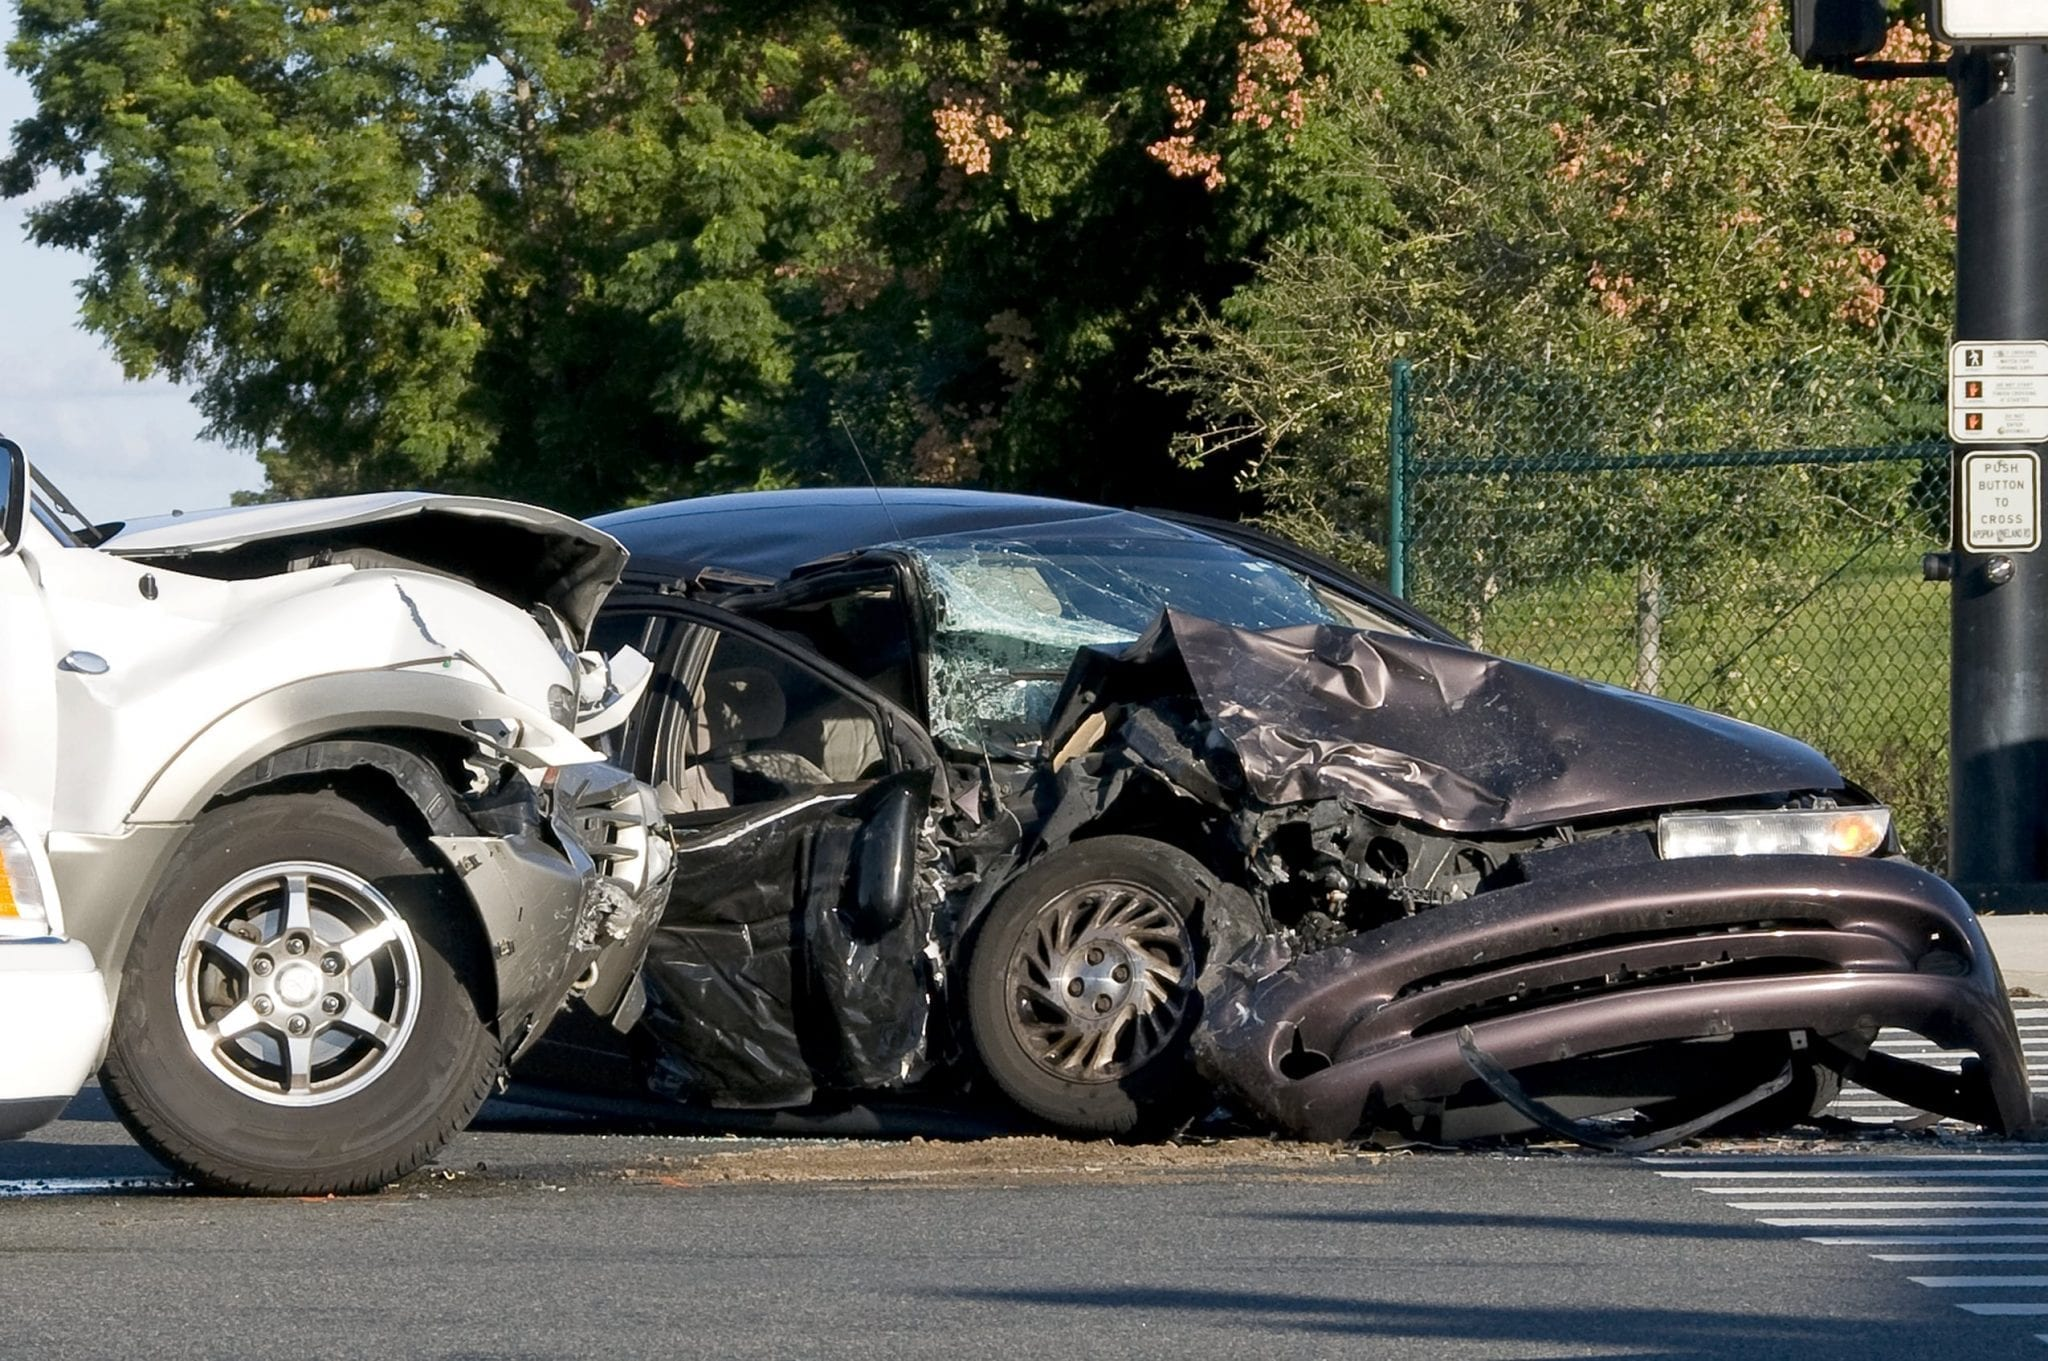 Aftermath Of An Auto Accident At An Intersection Stock Photo